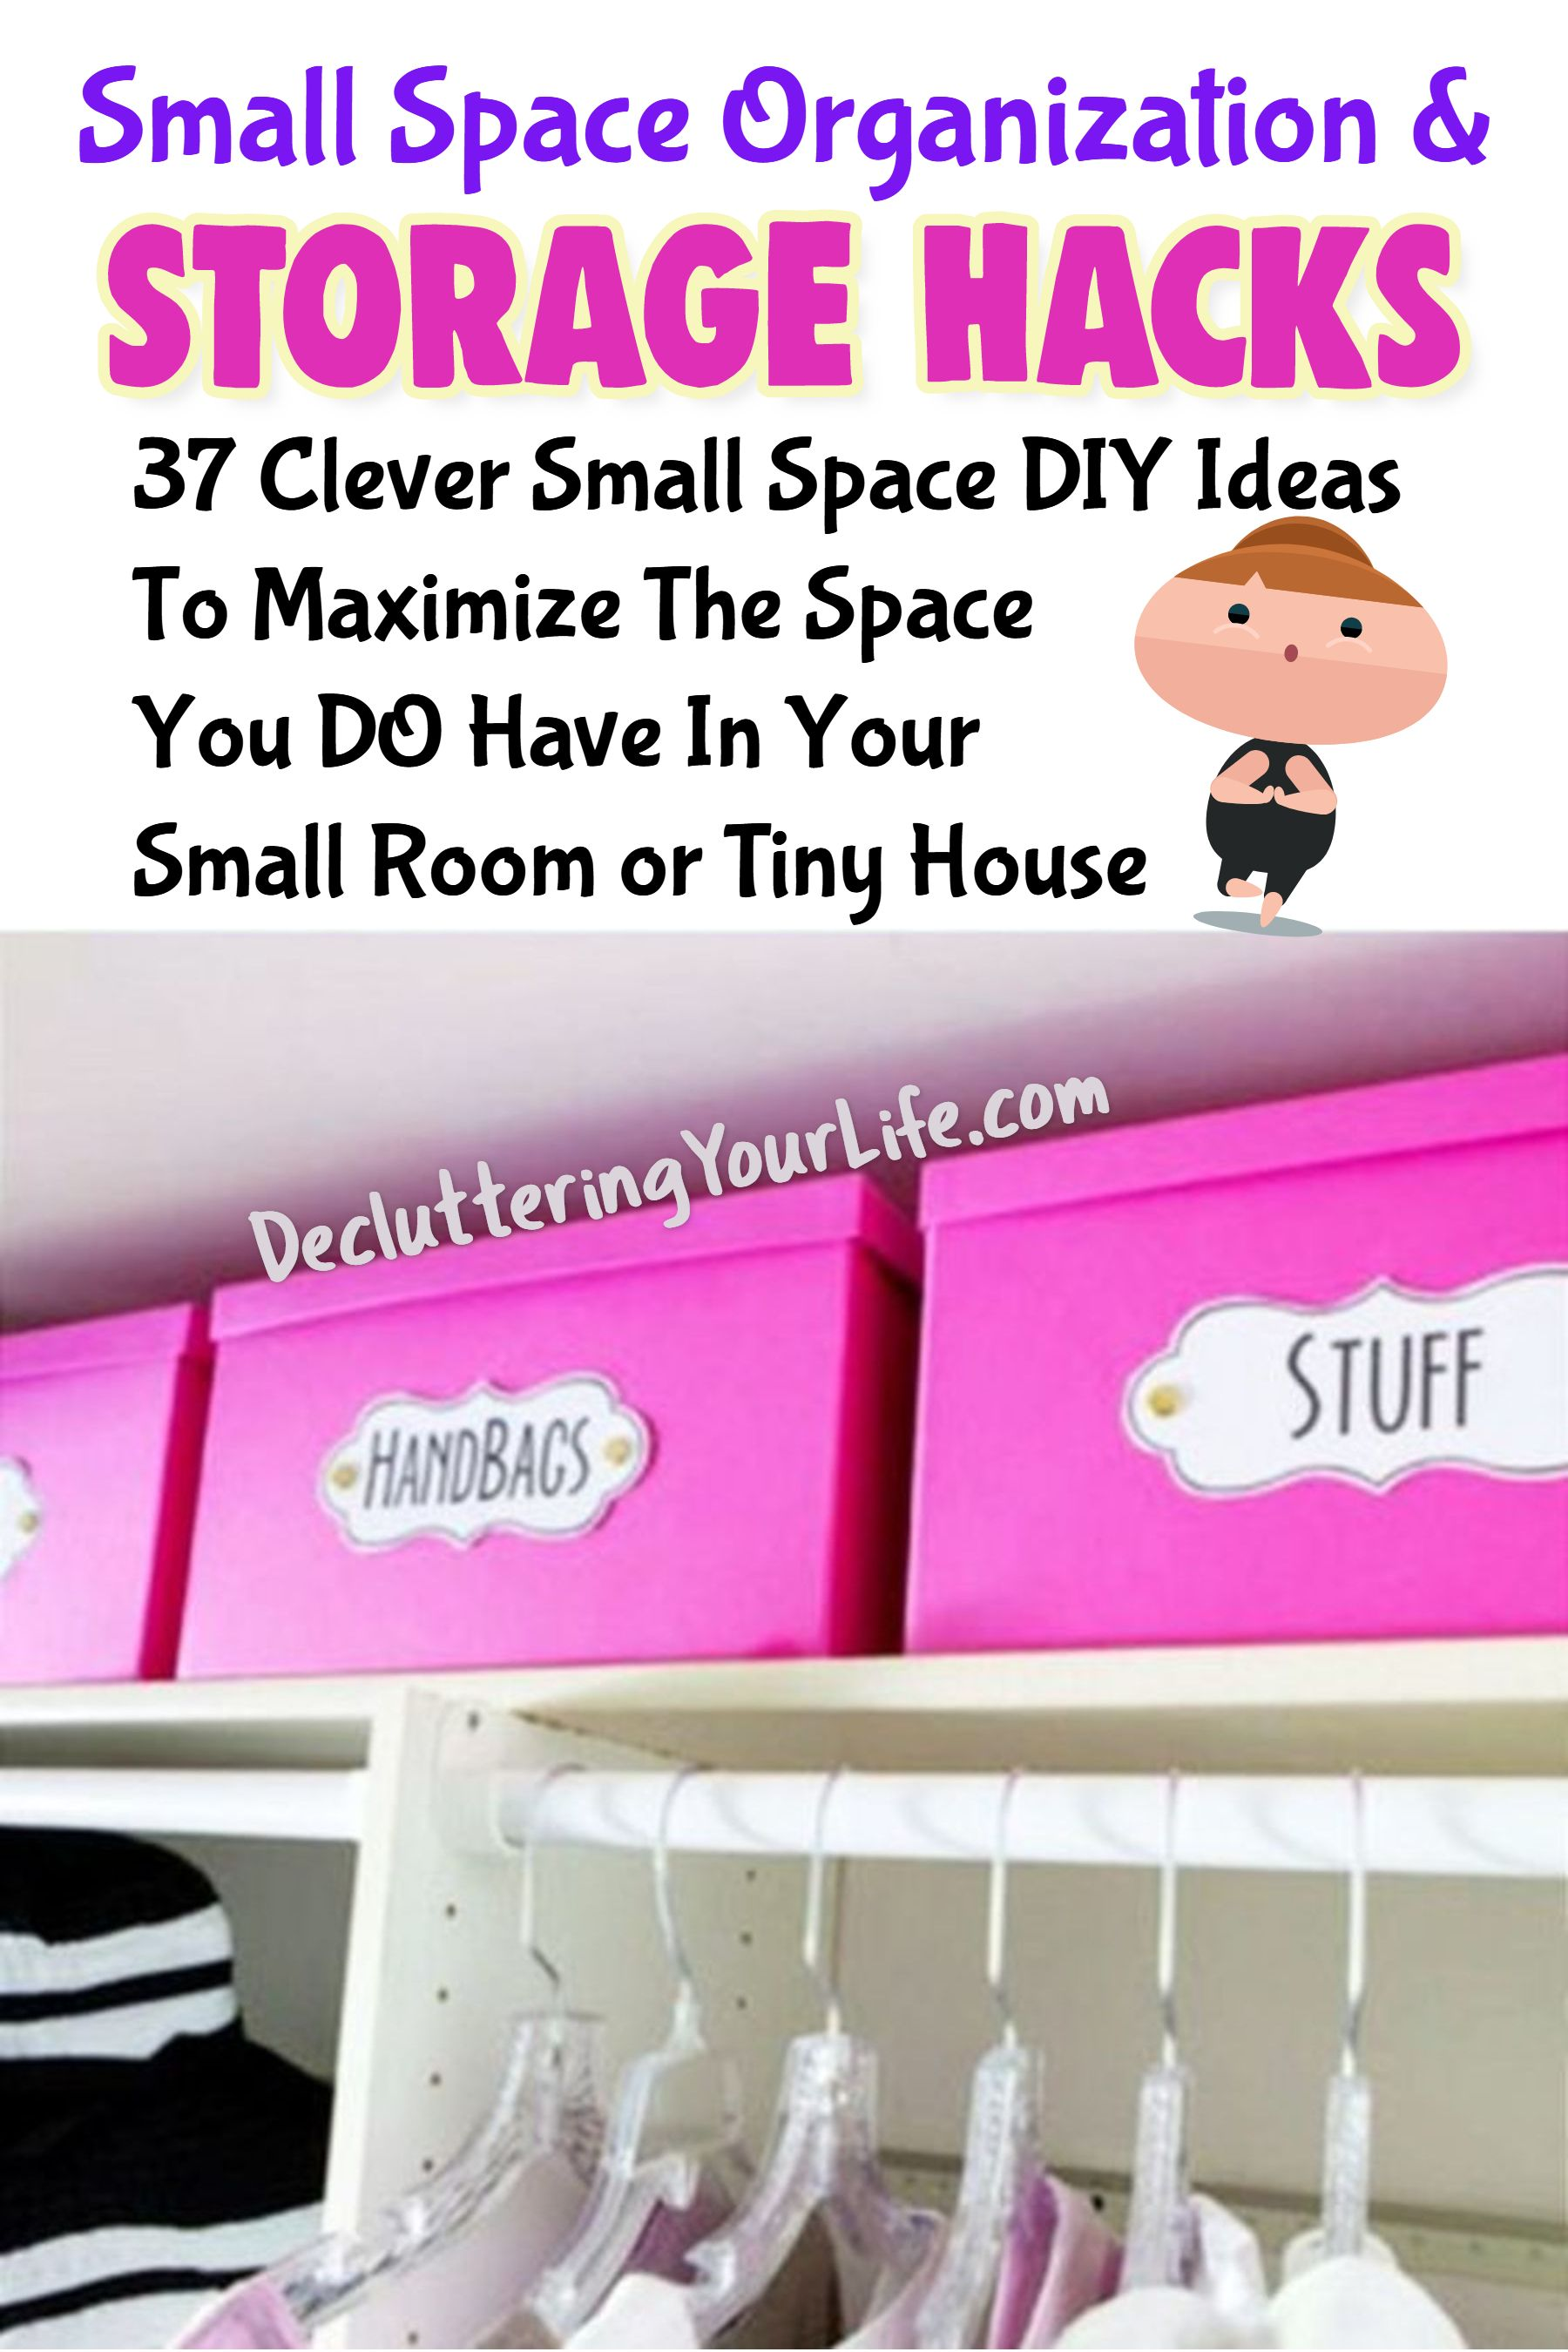 Storage Hacks How To Organize A Small House With No Storage Space Storage Hacks Small Space Diy Small Space Organization